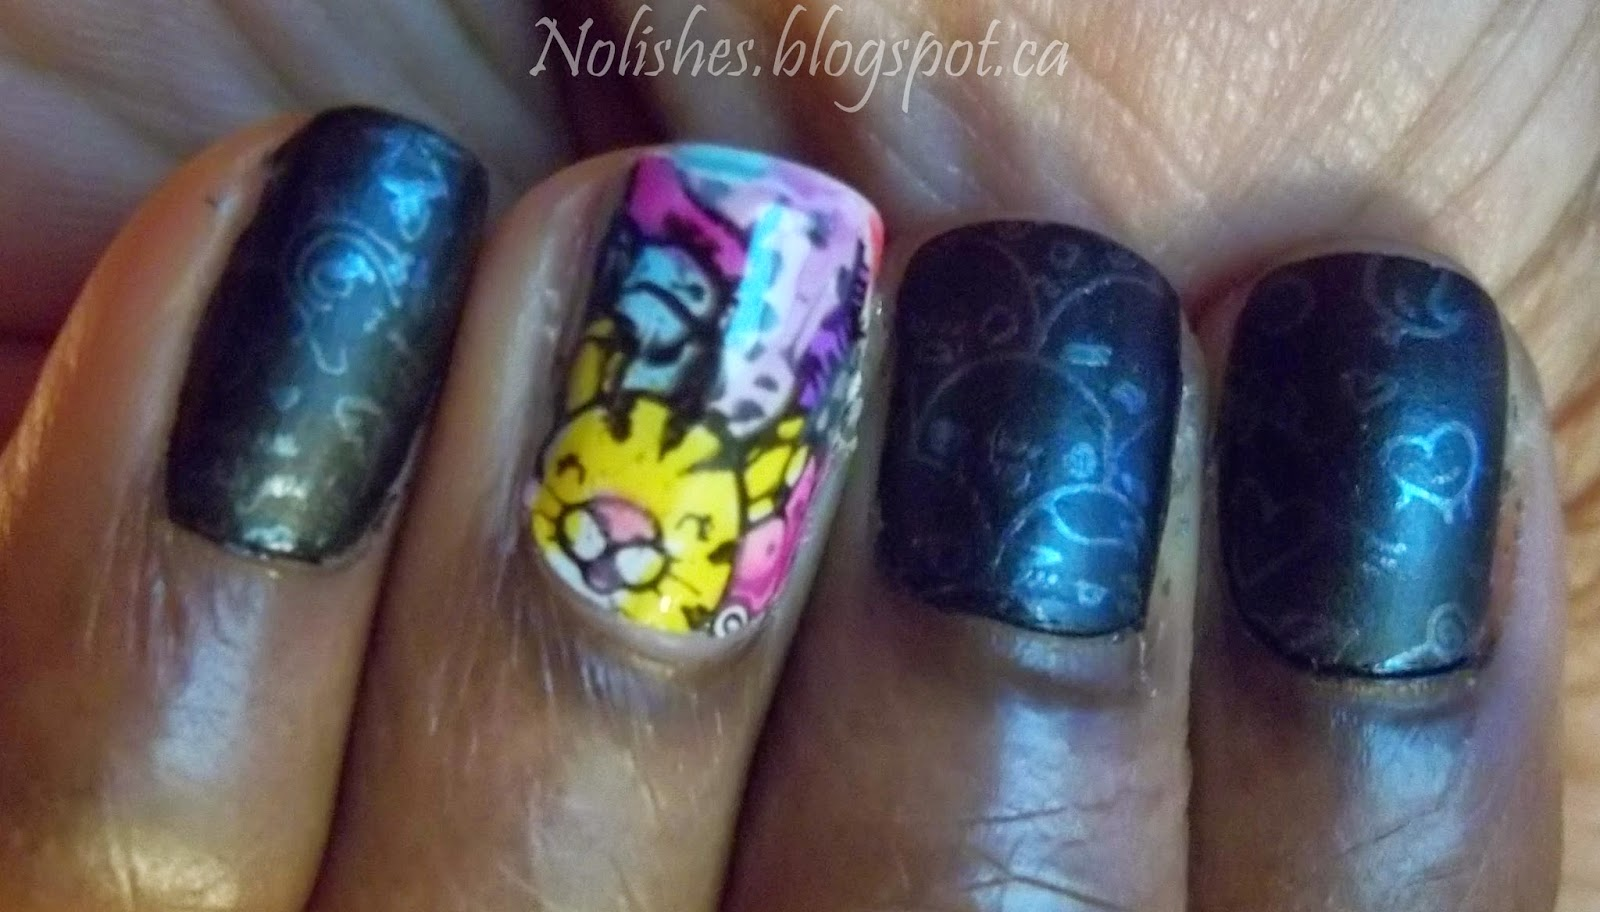 Colourful Cartoon Nail Stamping Manicure using Lead Light Technique, and Moyou London Princess Collection Plate 11. Polishes used include: Misa 'Bed of Roses'; Nfu OH Jelly Syrup Series Polishes NFU JS20, NFU JS18, NFU JS17, NFU JS12; China Glaze 'Creative Fantasy'; OPI '4 in the Morning'; NYC 'French White Tip', and Rimmel 'Black Satin'